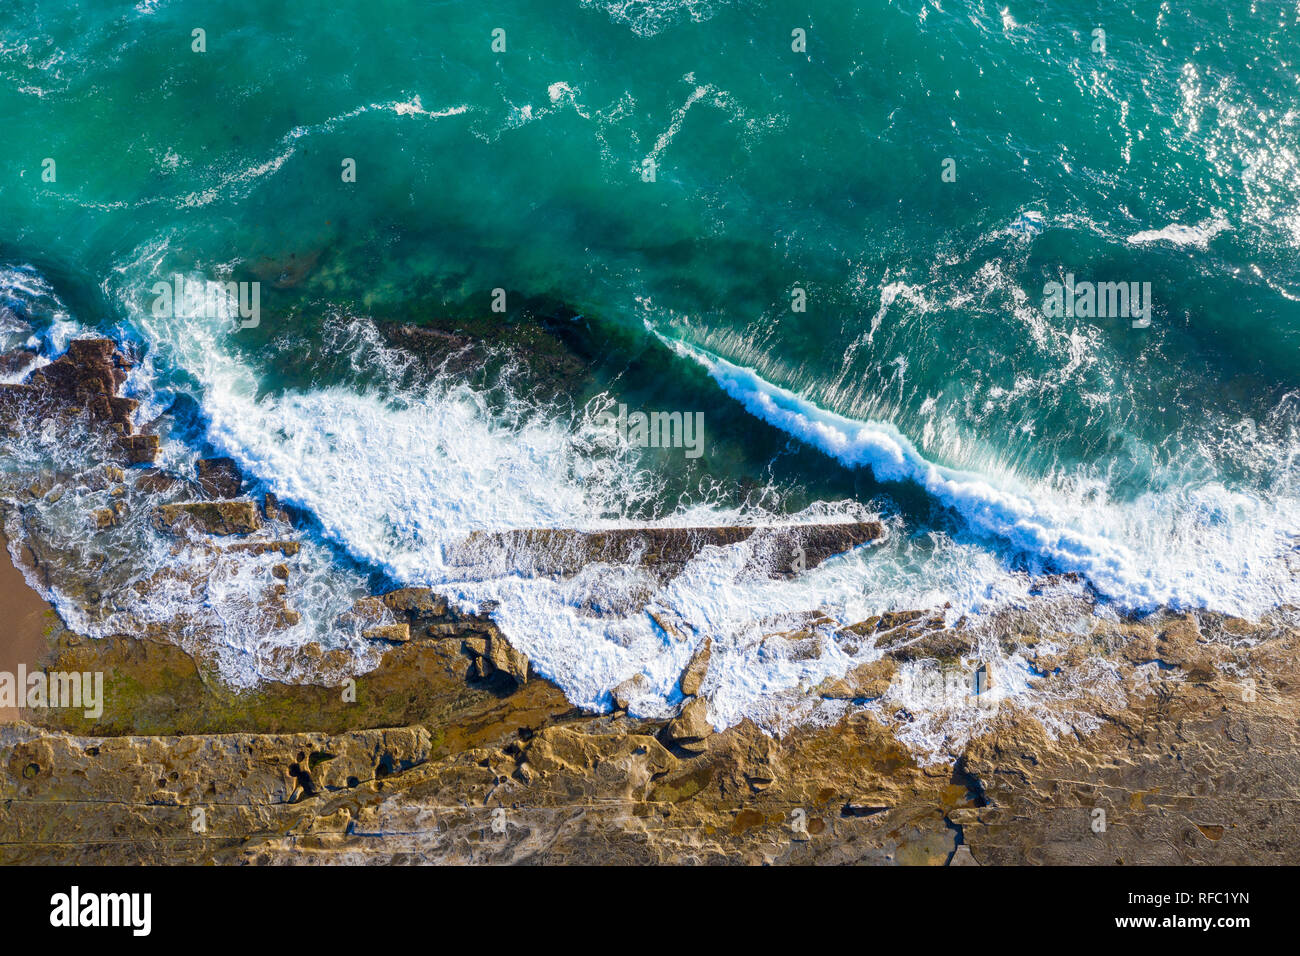 Top down view of the waves crashing onto the rock shelf at Dudley Beach - Newastle Australia. Aerial view of rugged coastal lanscape. - Stock Image